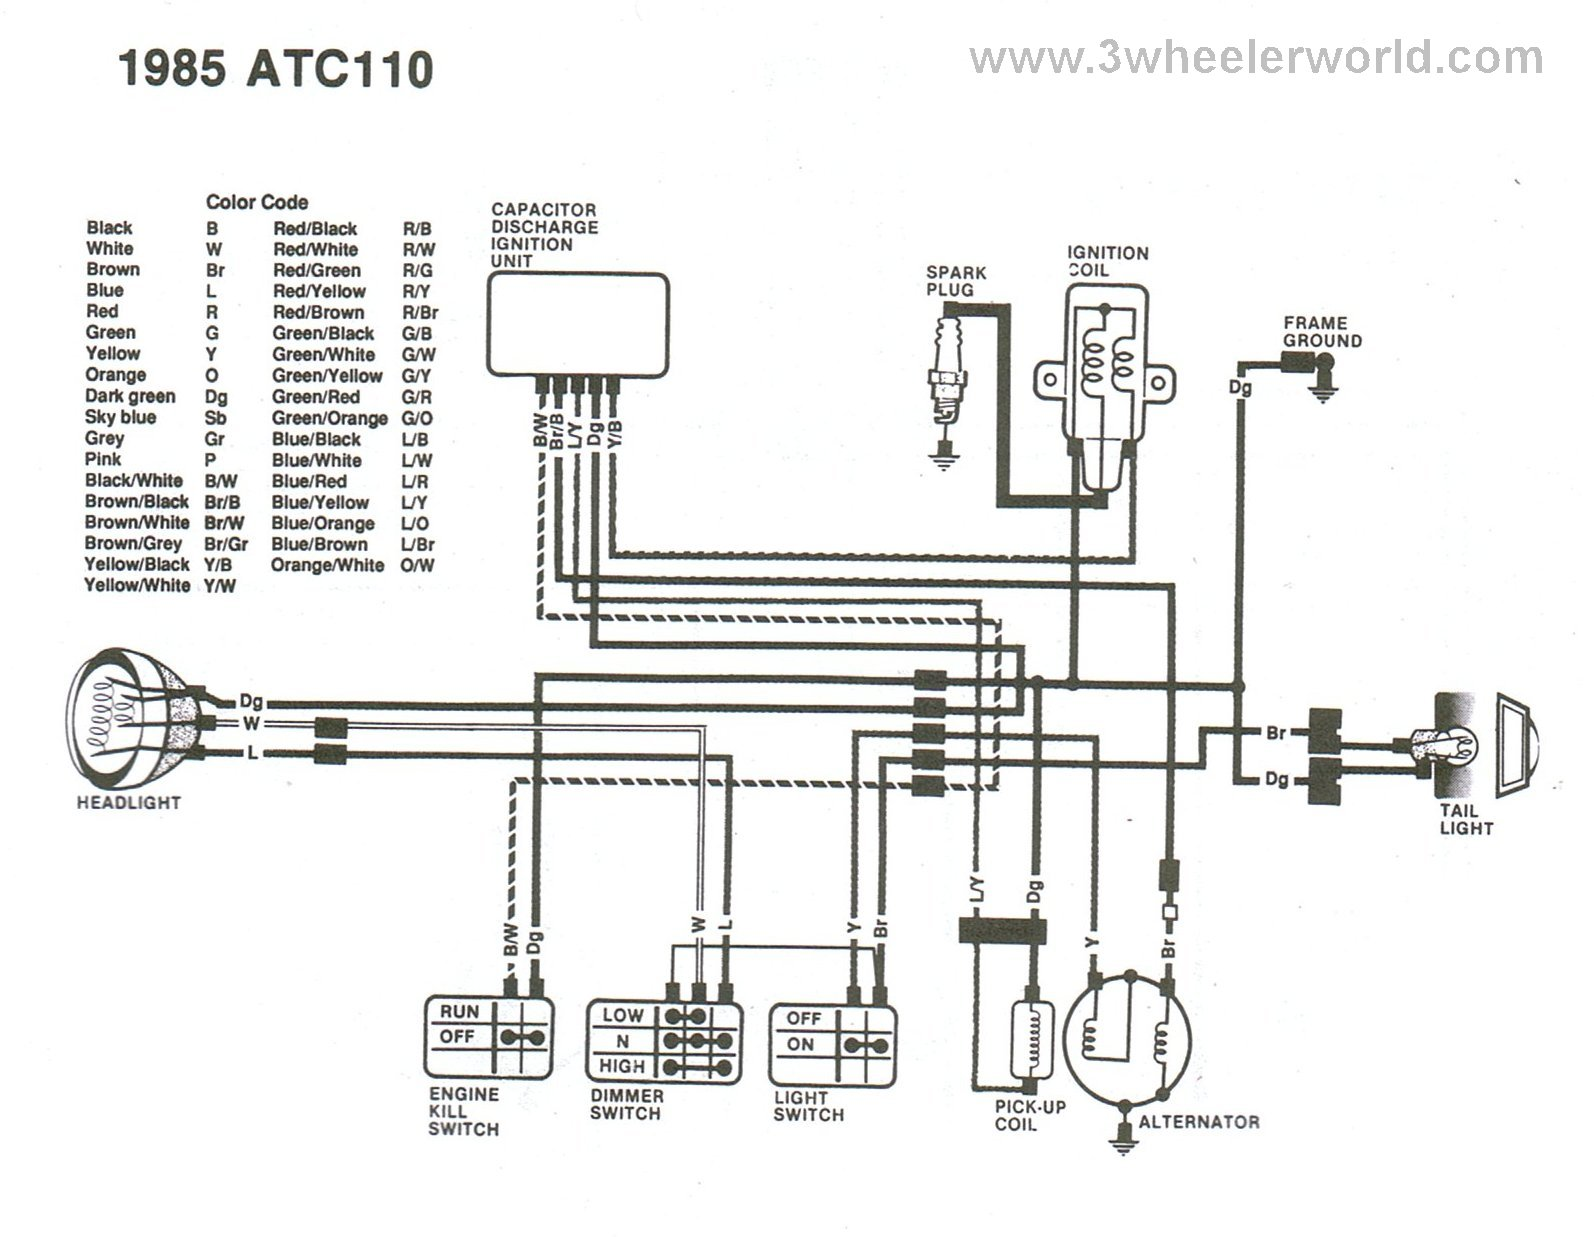 Atc 250es Wiring Diagram Library Honda Xr600 Xr600r Diagrams Schematics Inside Atc110 1985